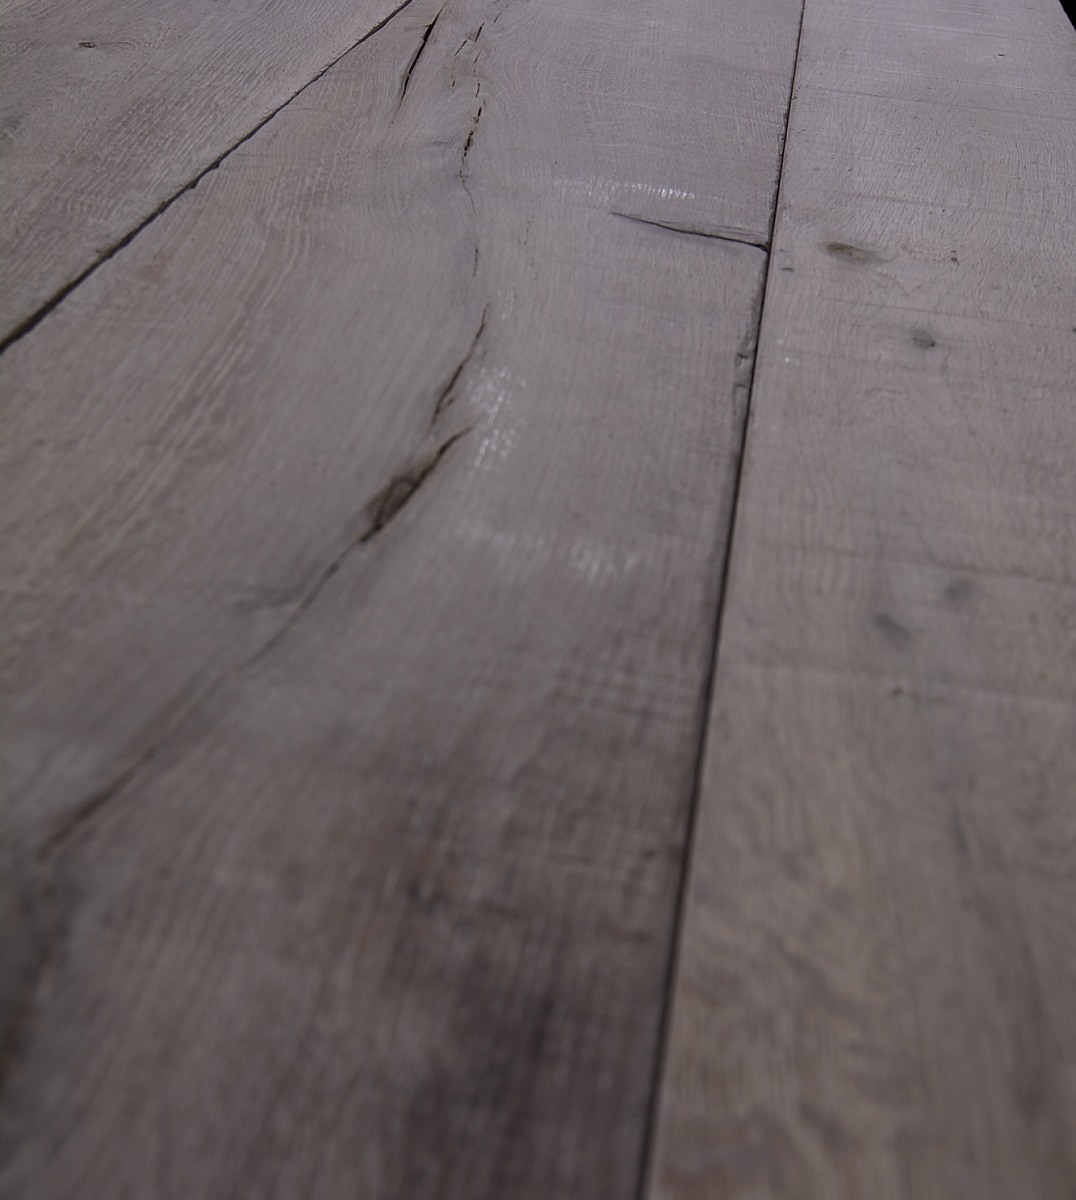 Traditional Distressed Pale Wood Floor